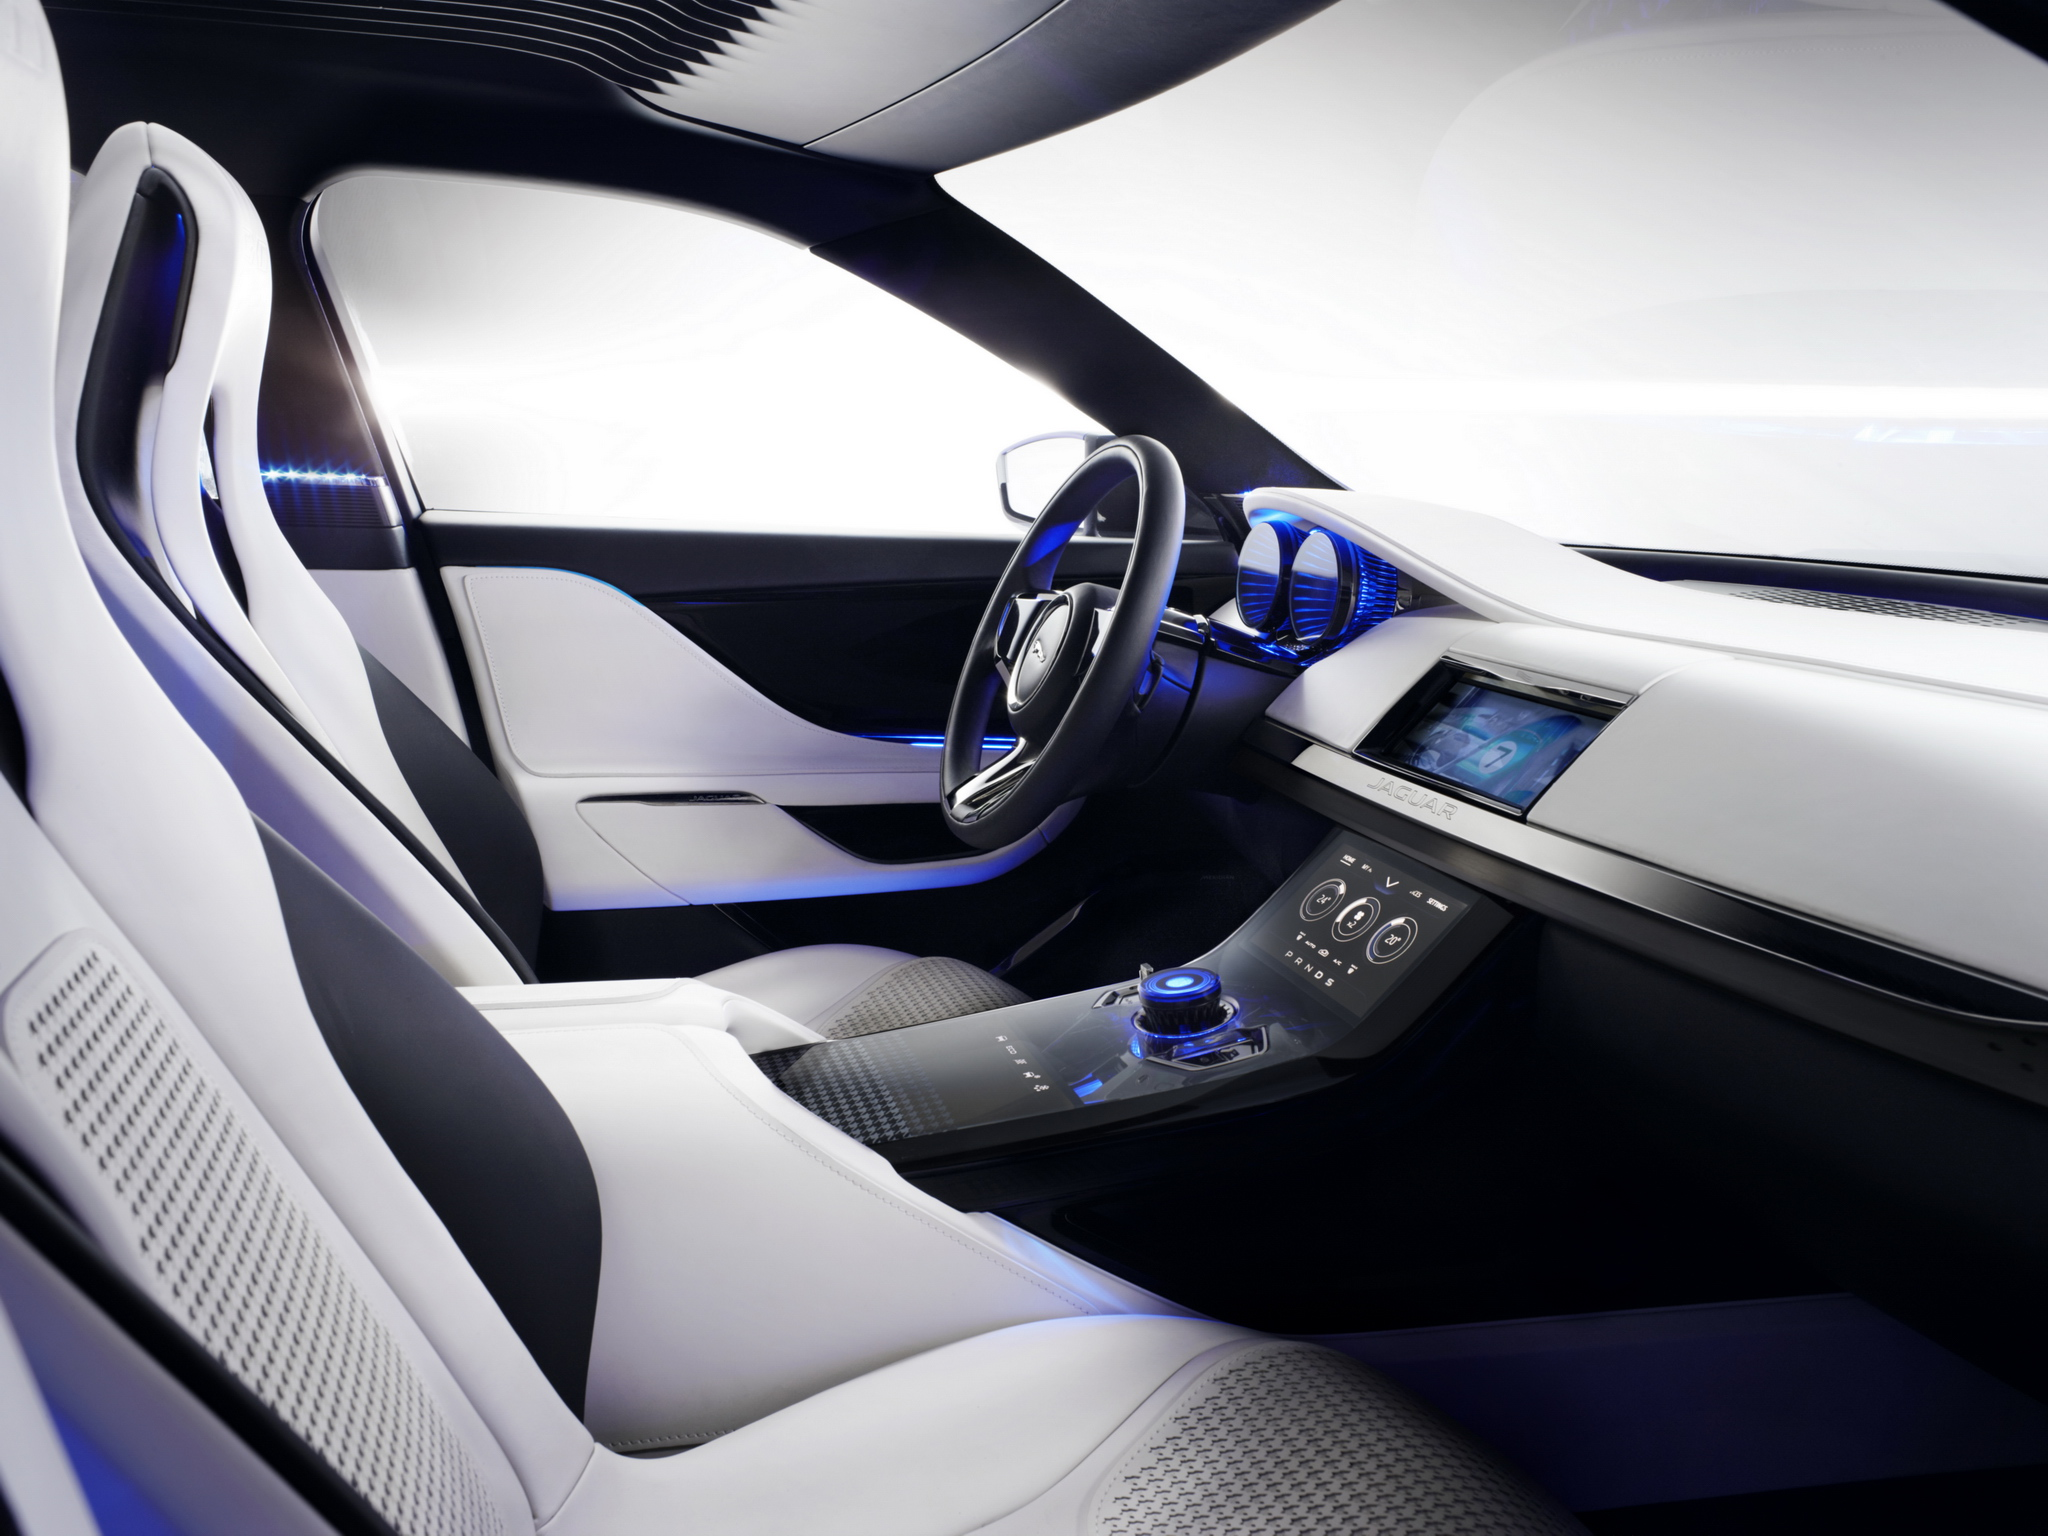 2013 jaguar c x17 concept suv interior f wallpaper 2048x1536 170966 wallpaperup. Black Bedroom Furniture Sets. Home Design Ideas